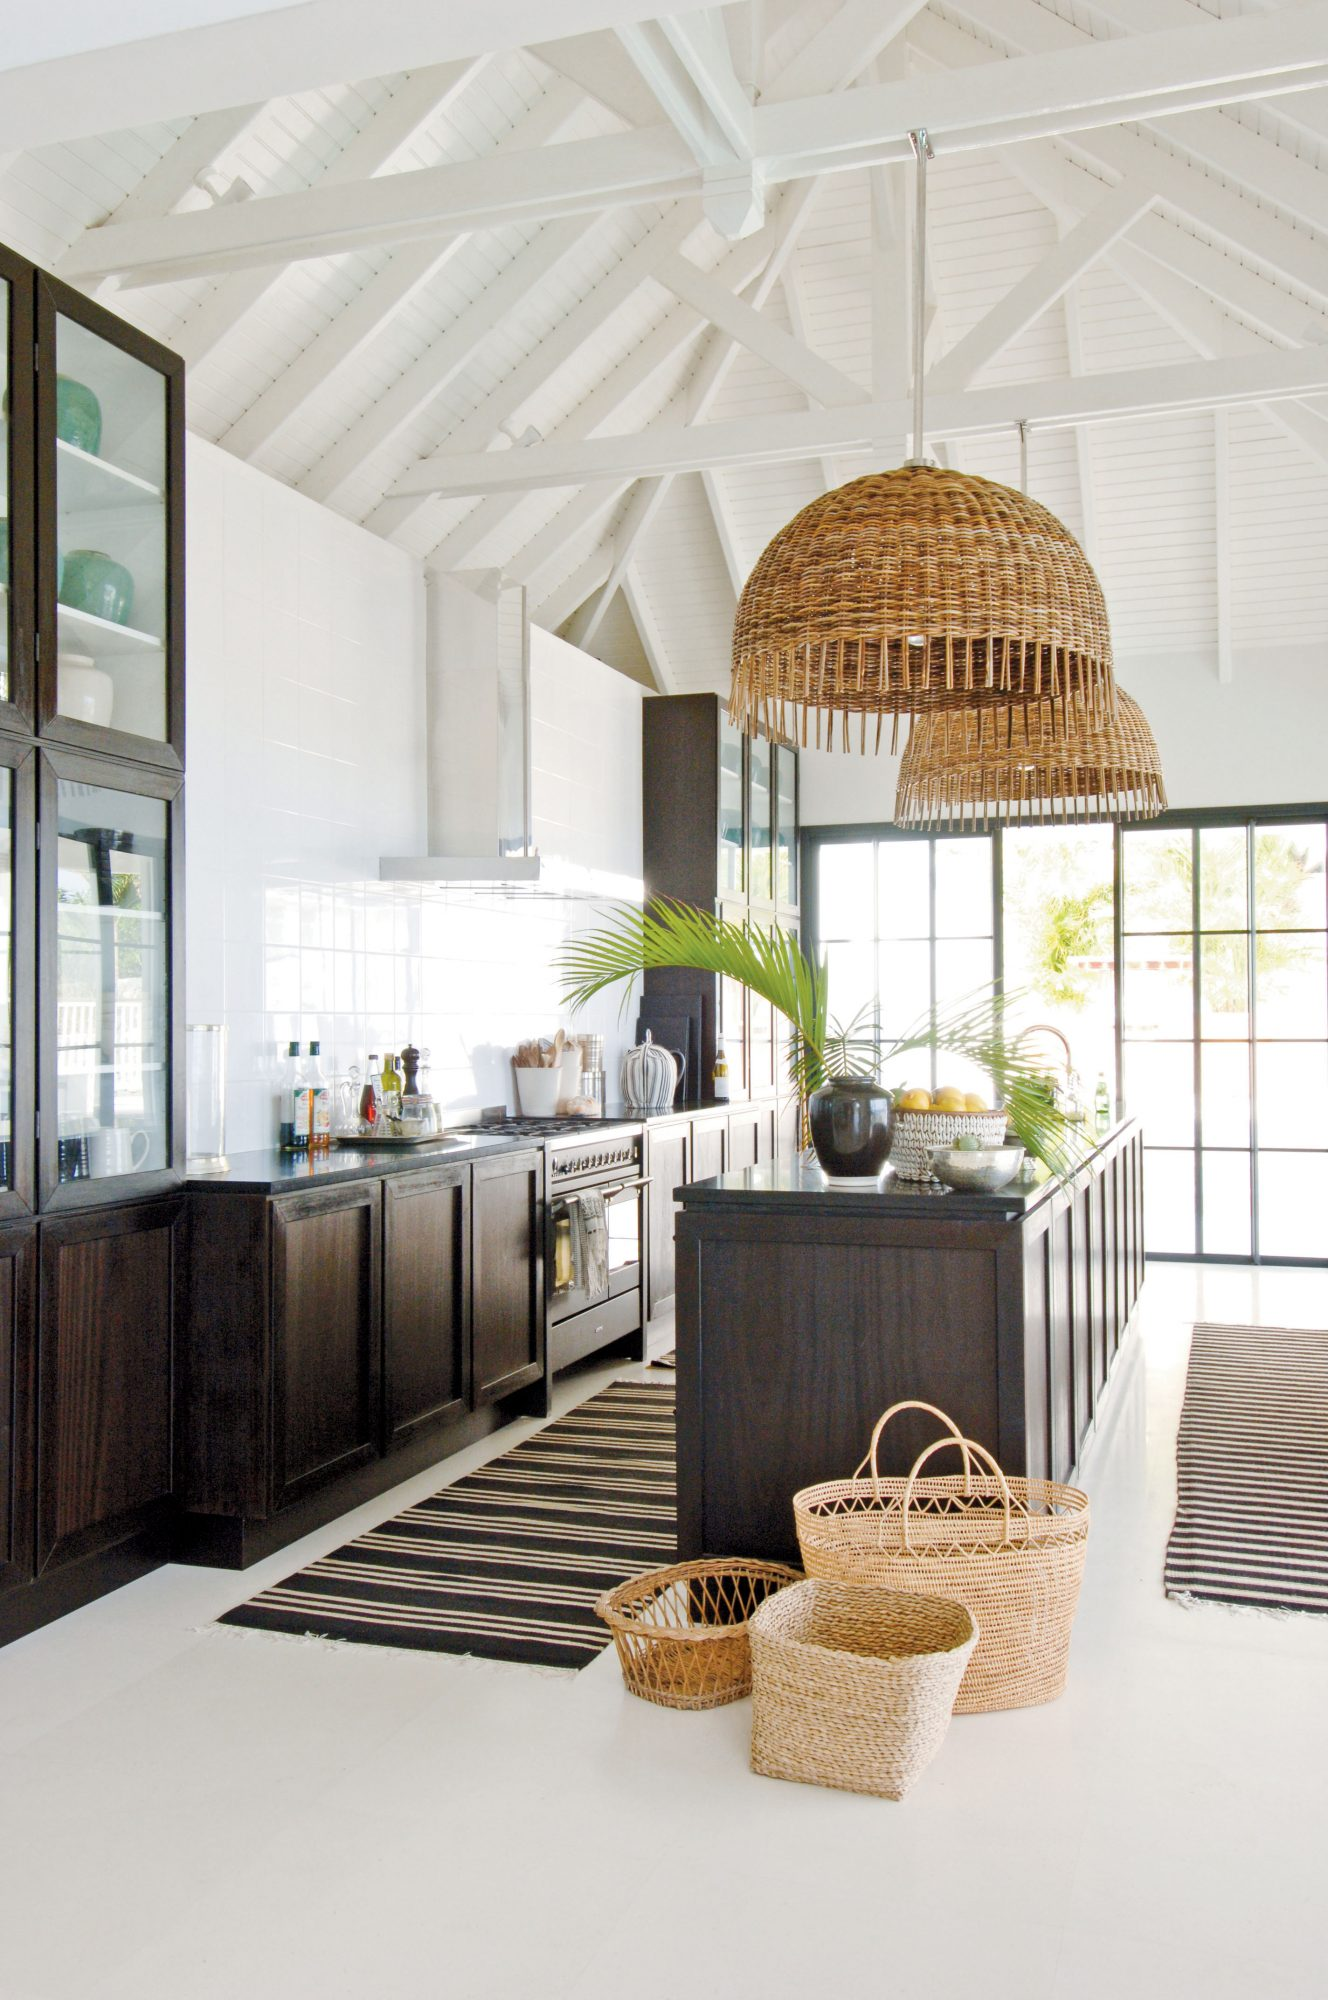 The varying shapes and sizes of stripes and rectangles keep the look from being too repetitive. Oversize basket-weave shades are delightfully unexpected.